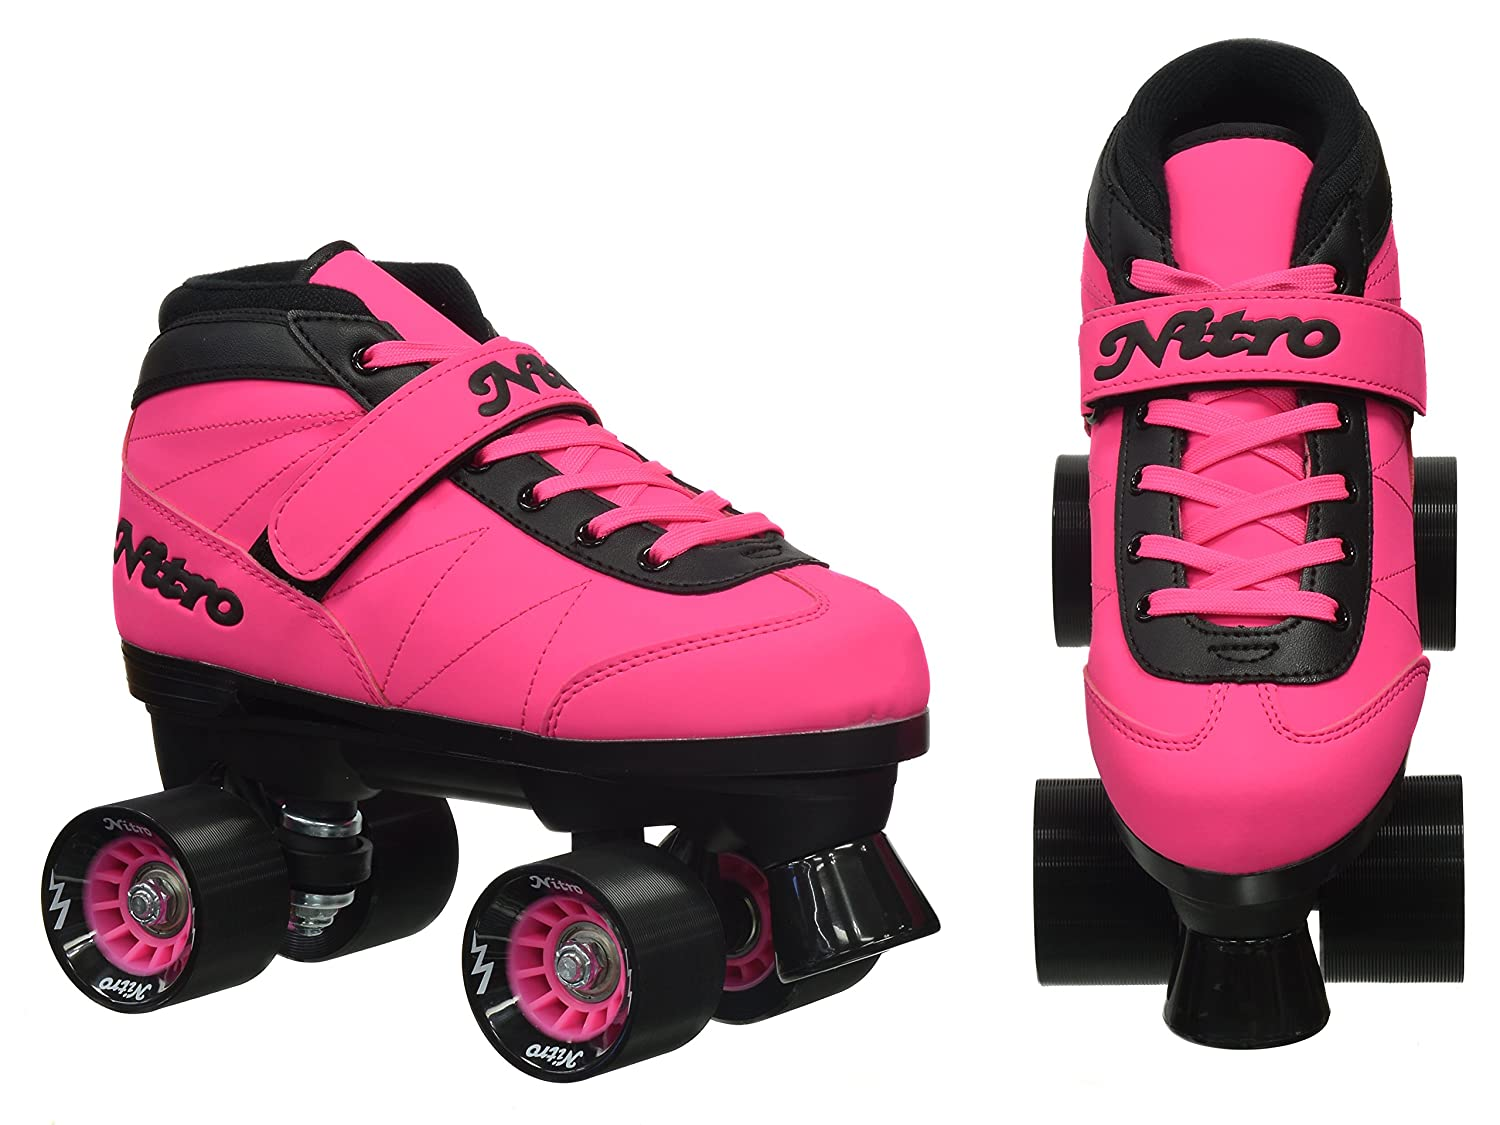 Roller skates for sale nz